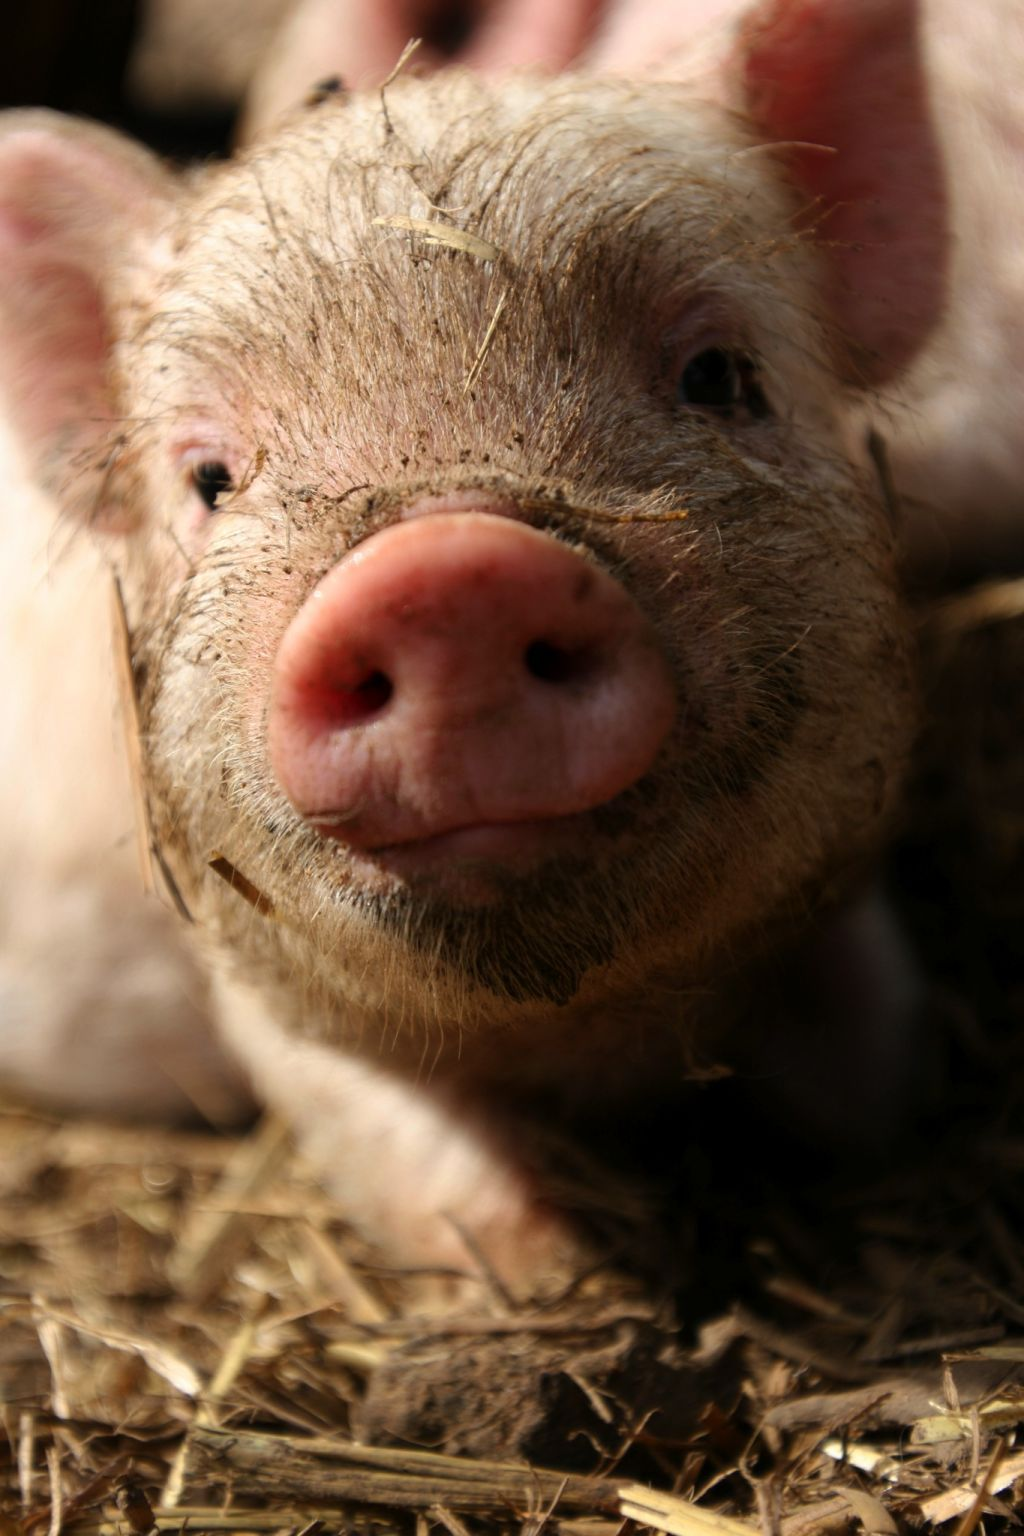 Pigs Are Very Intelligent Highly Social And Deeply Emotional Animals They Display Many Different Personalities There Teacup Pigs Baby Animals Cute Animals